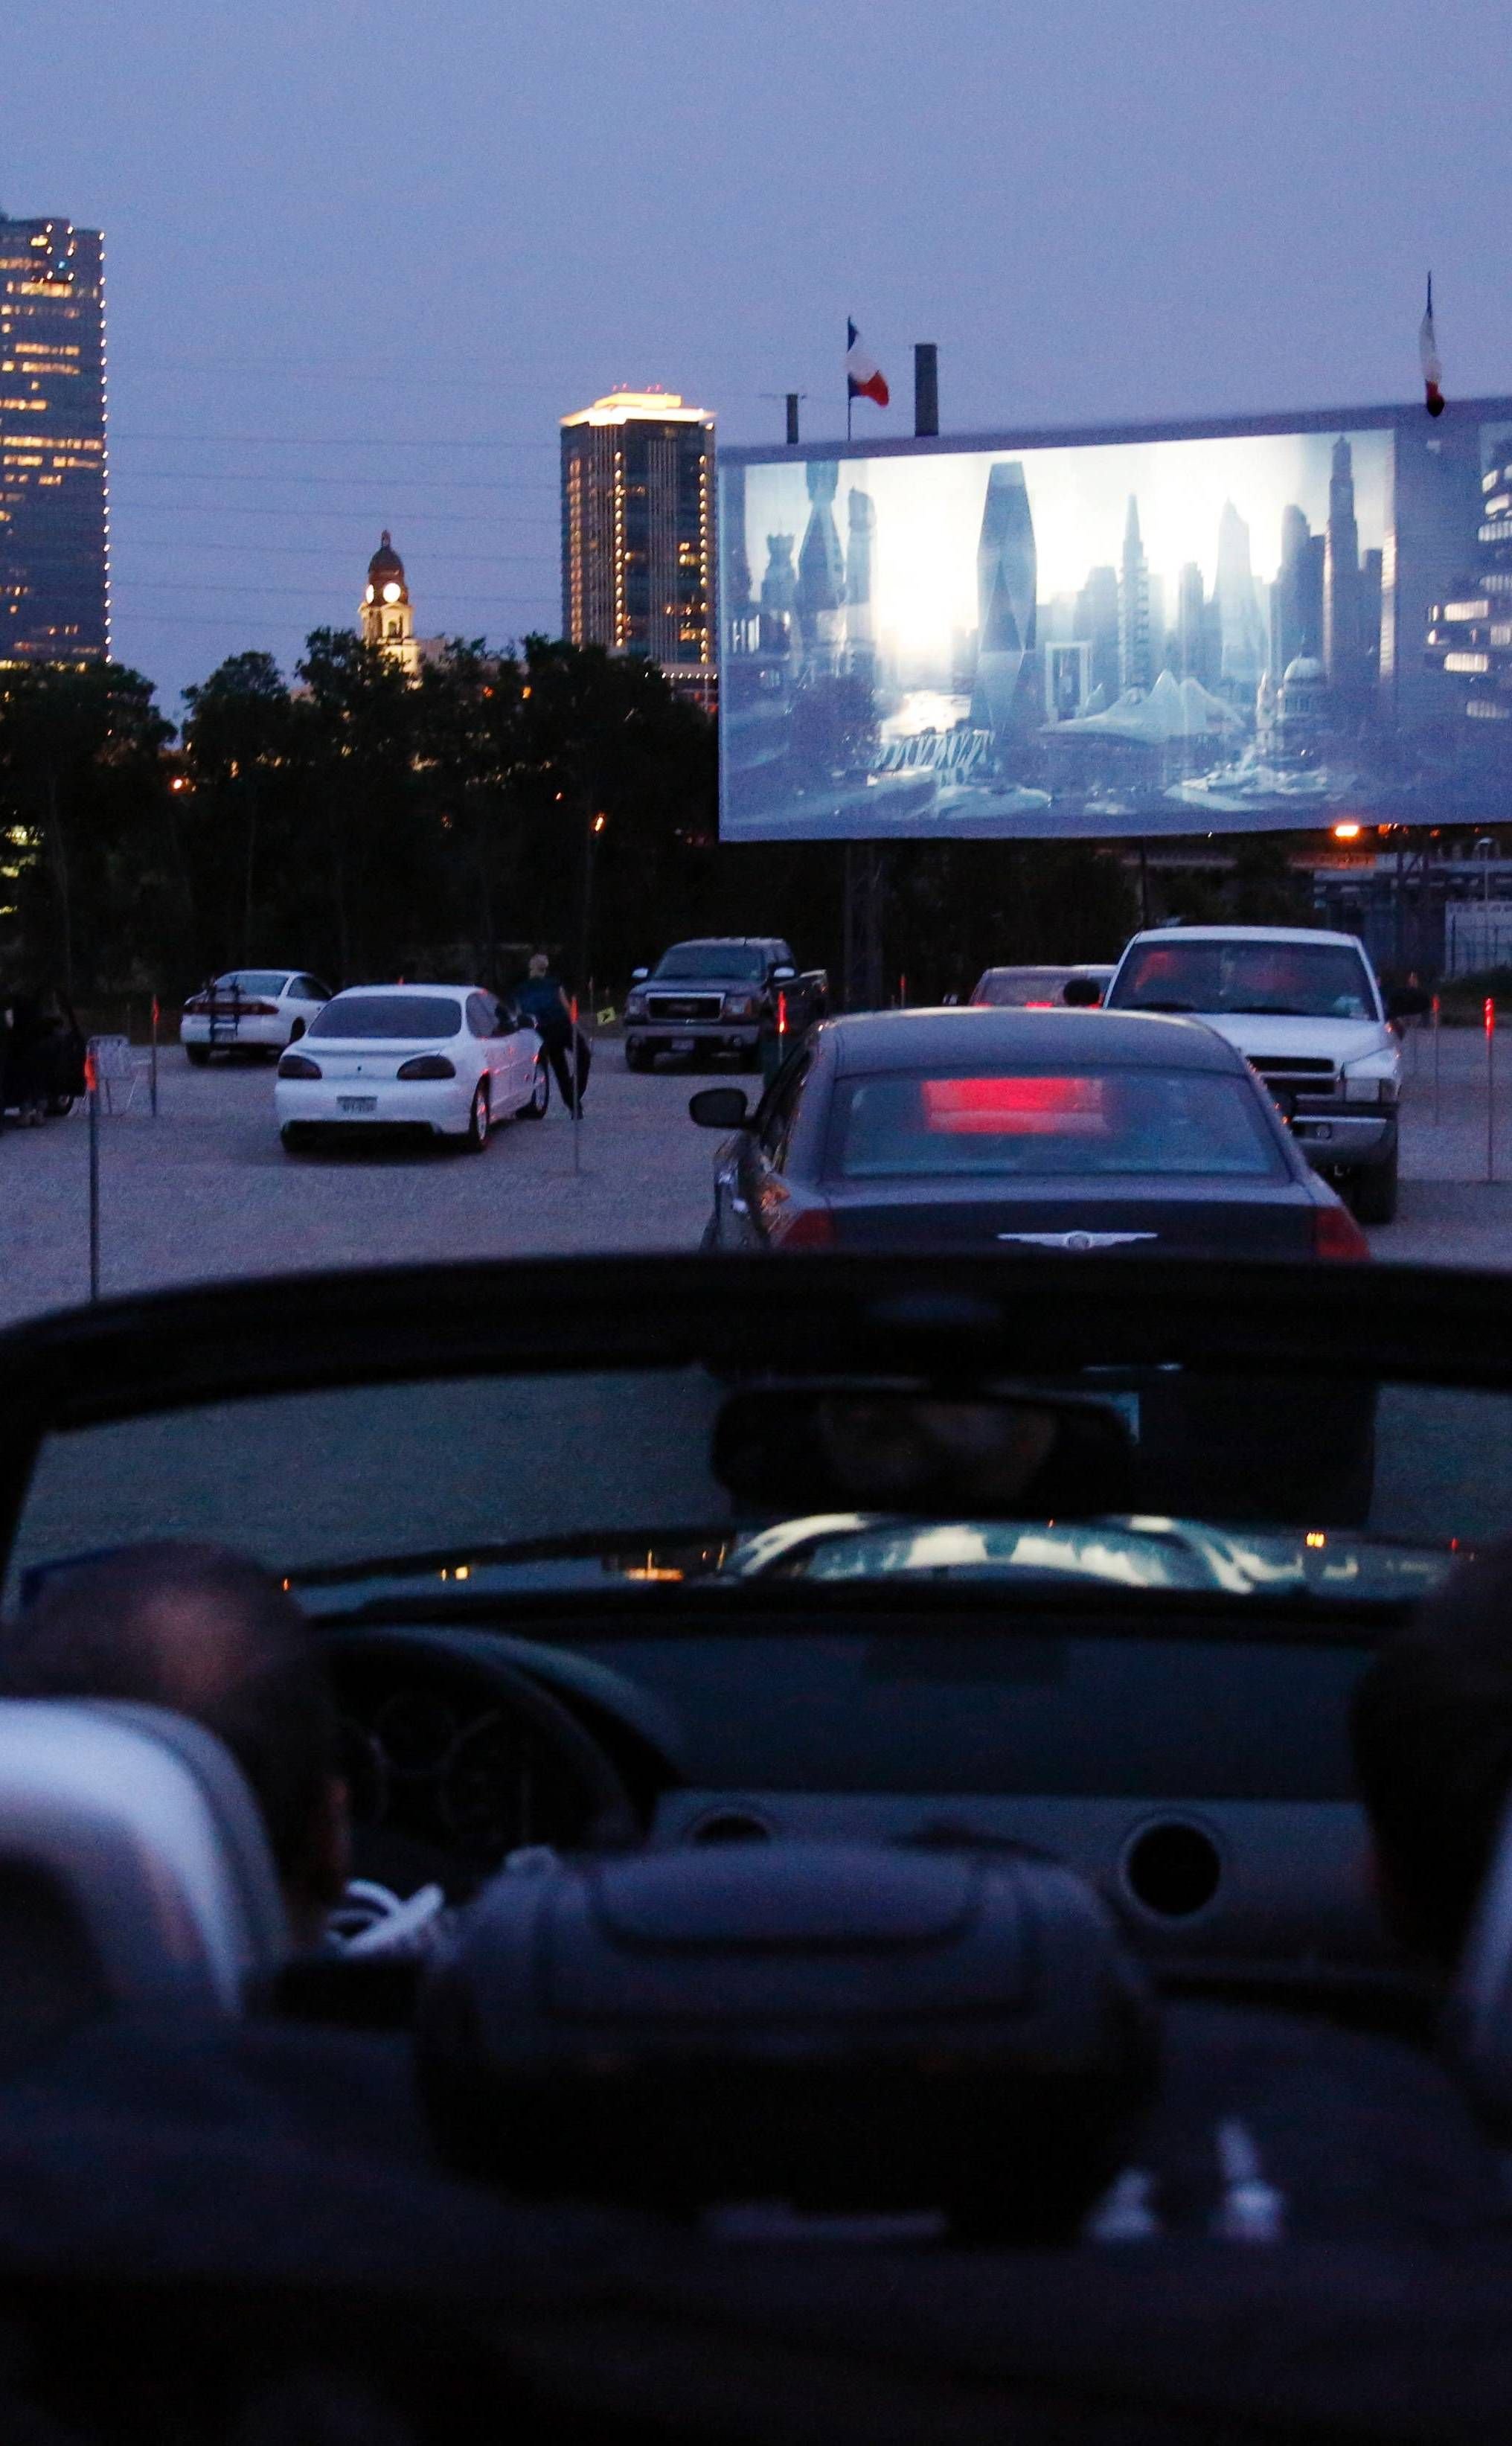 Coyotes drive in travel vacation ideas road trip